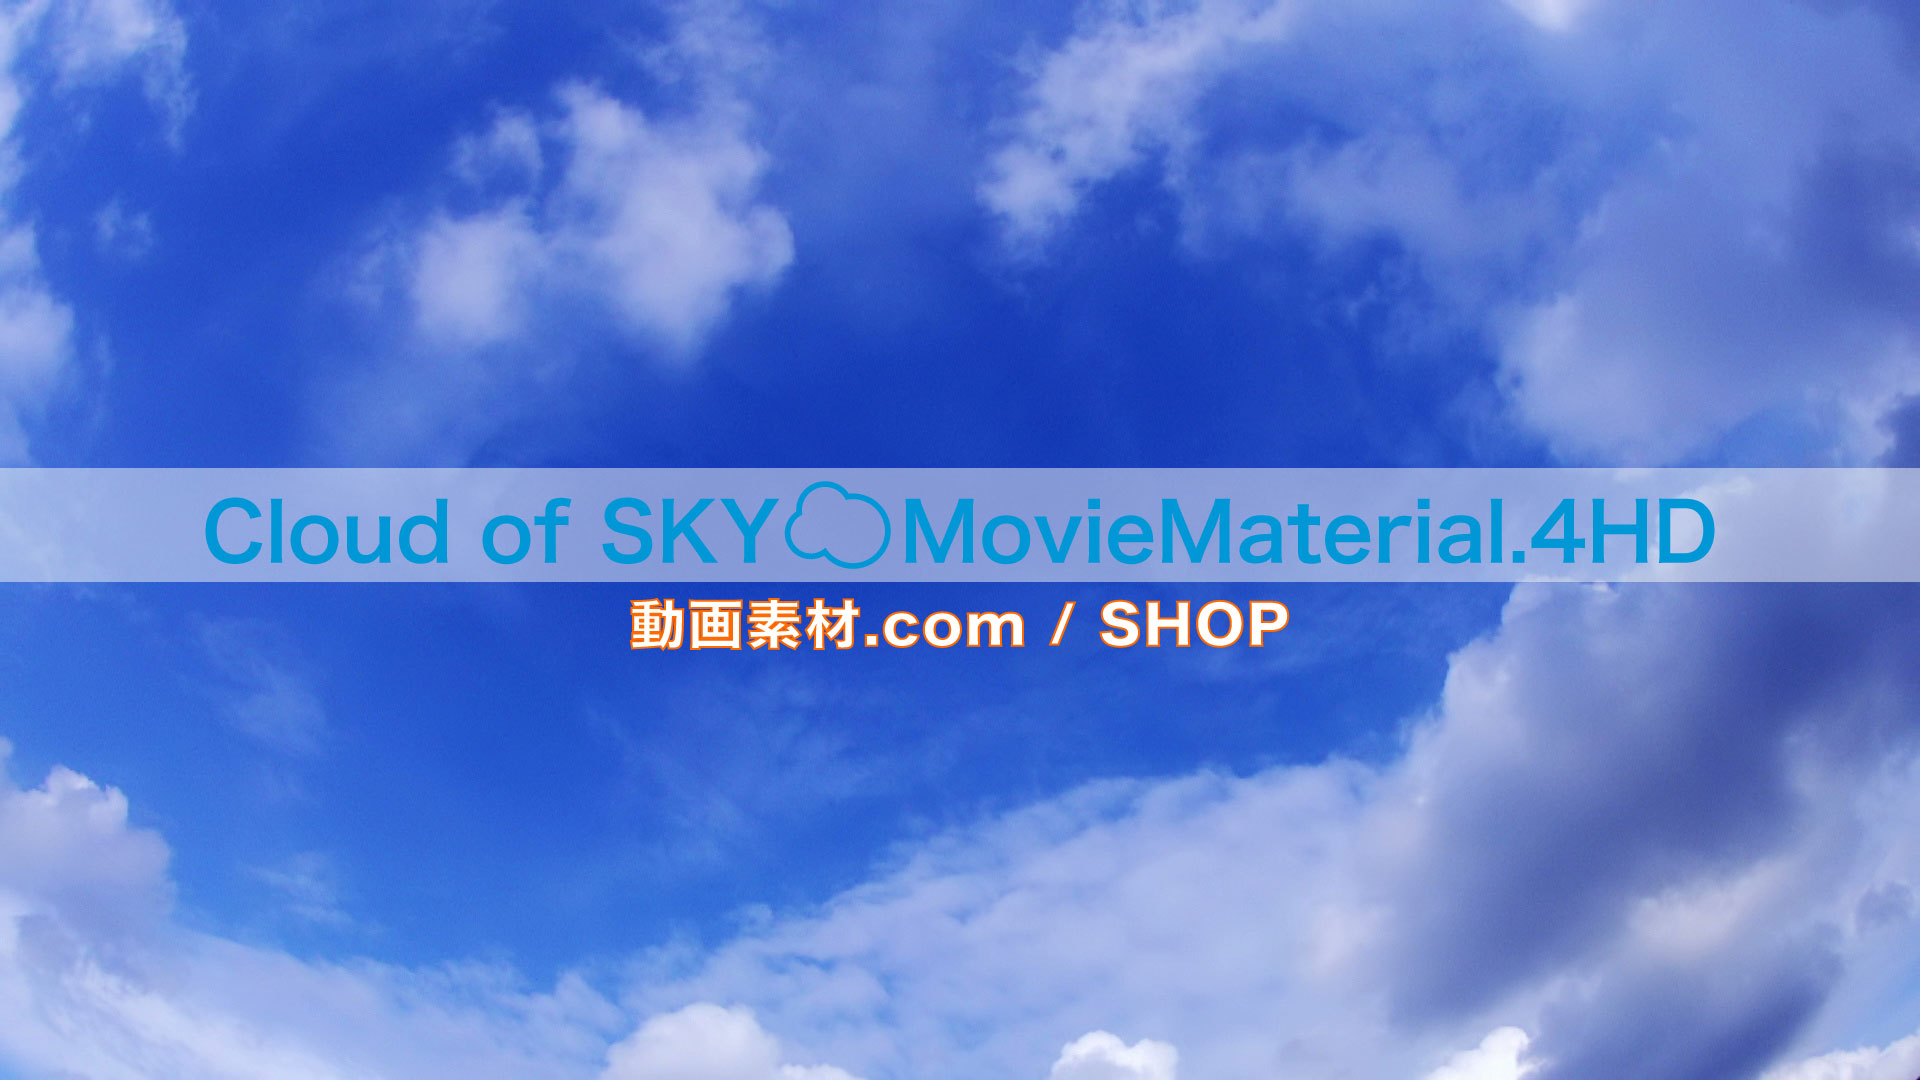 【Cloud of SKY MovieMaterial.4HD】ロイヤリティフリー フルハイビジョン空と雲の動画素材集 Image.5